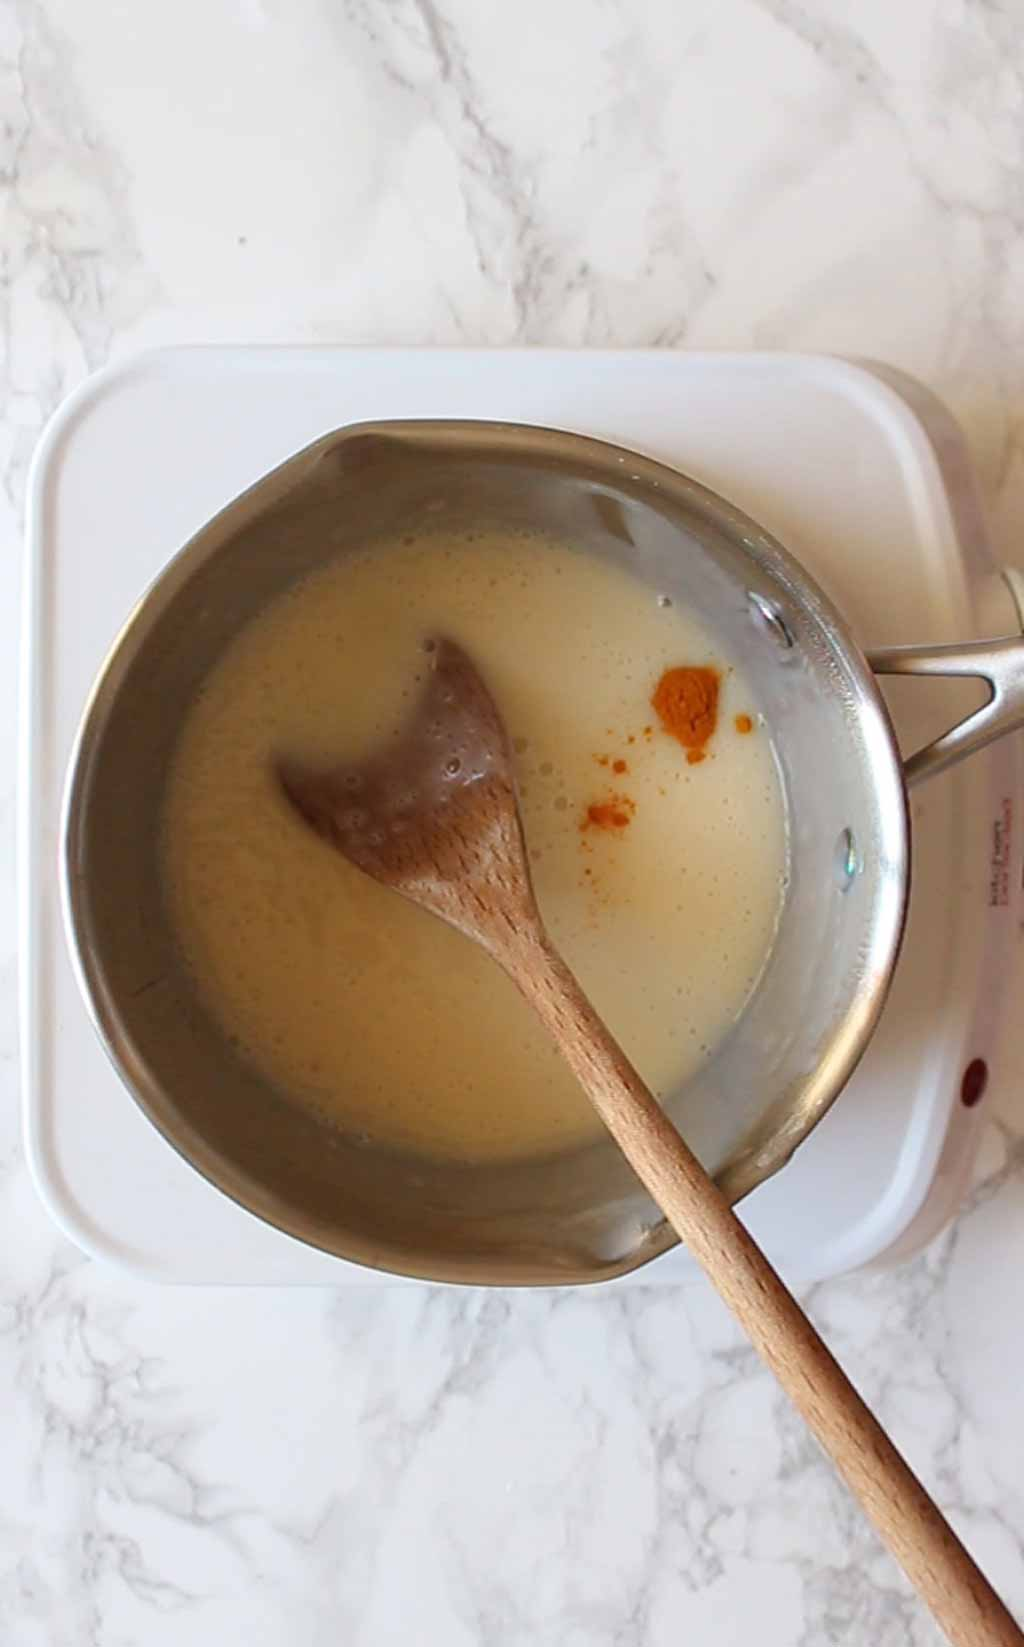 a pinch of turmeric added to the pot